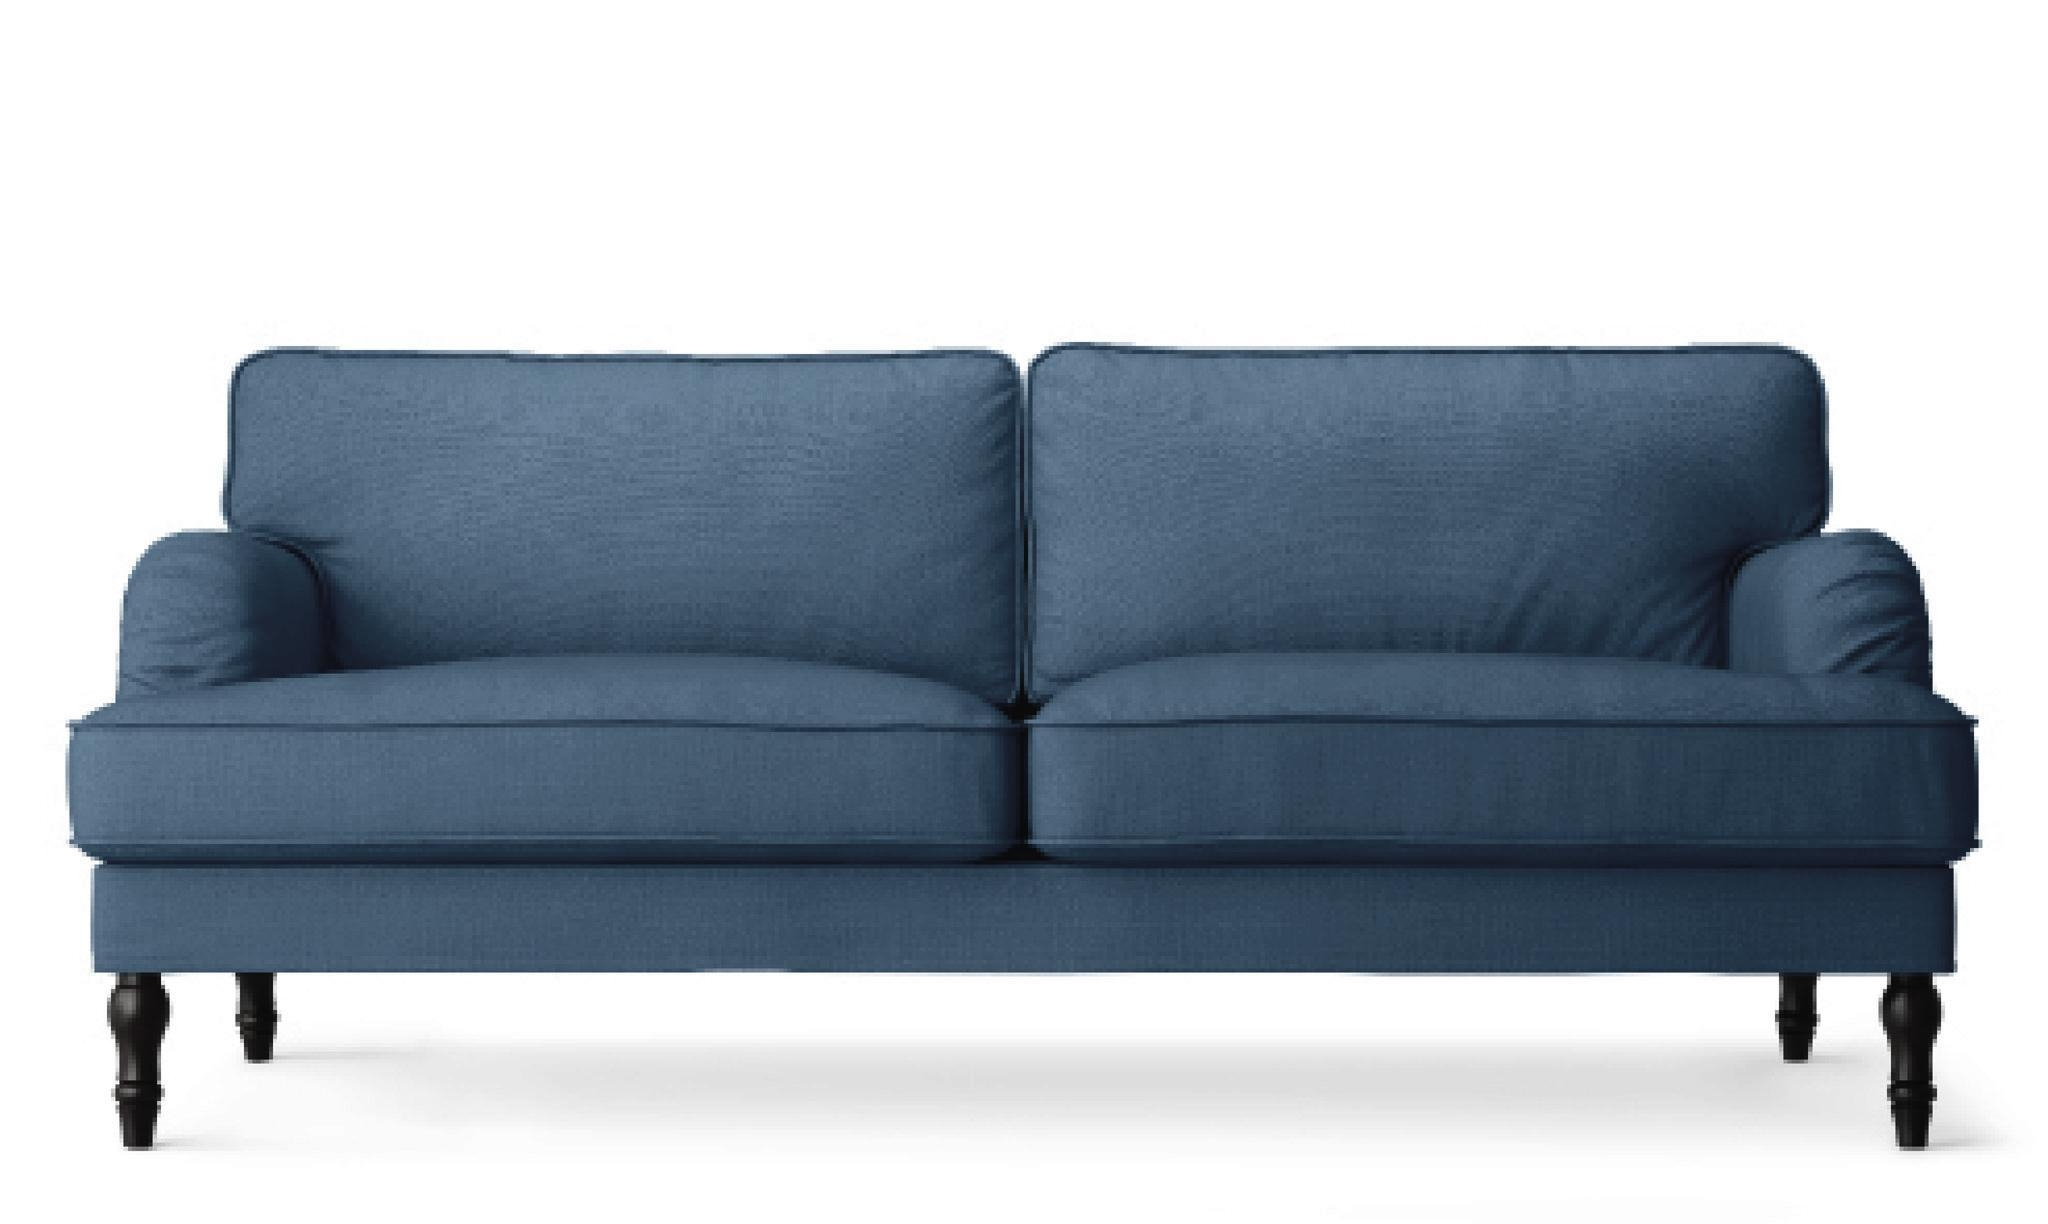 Fabric Sofas | Ikea Ireland – Dublin Within Fabric Sofas (Image 12 of 20)